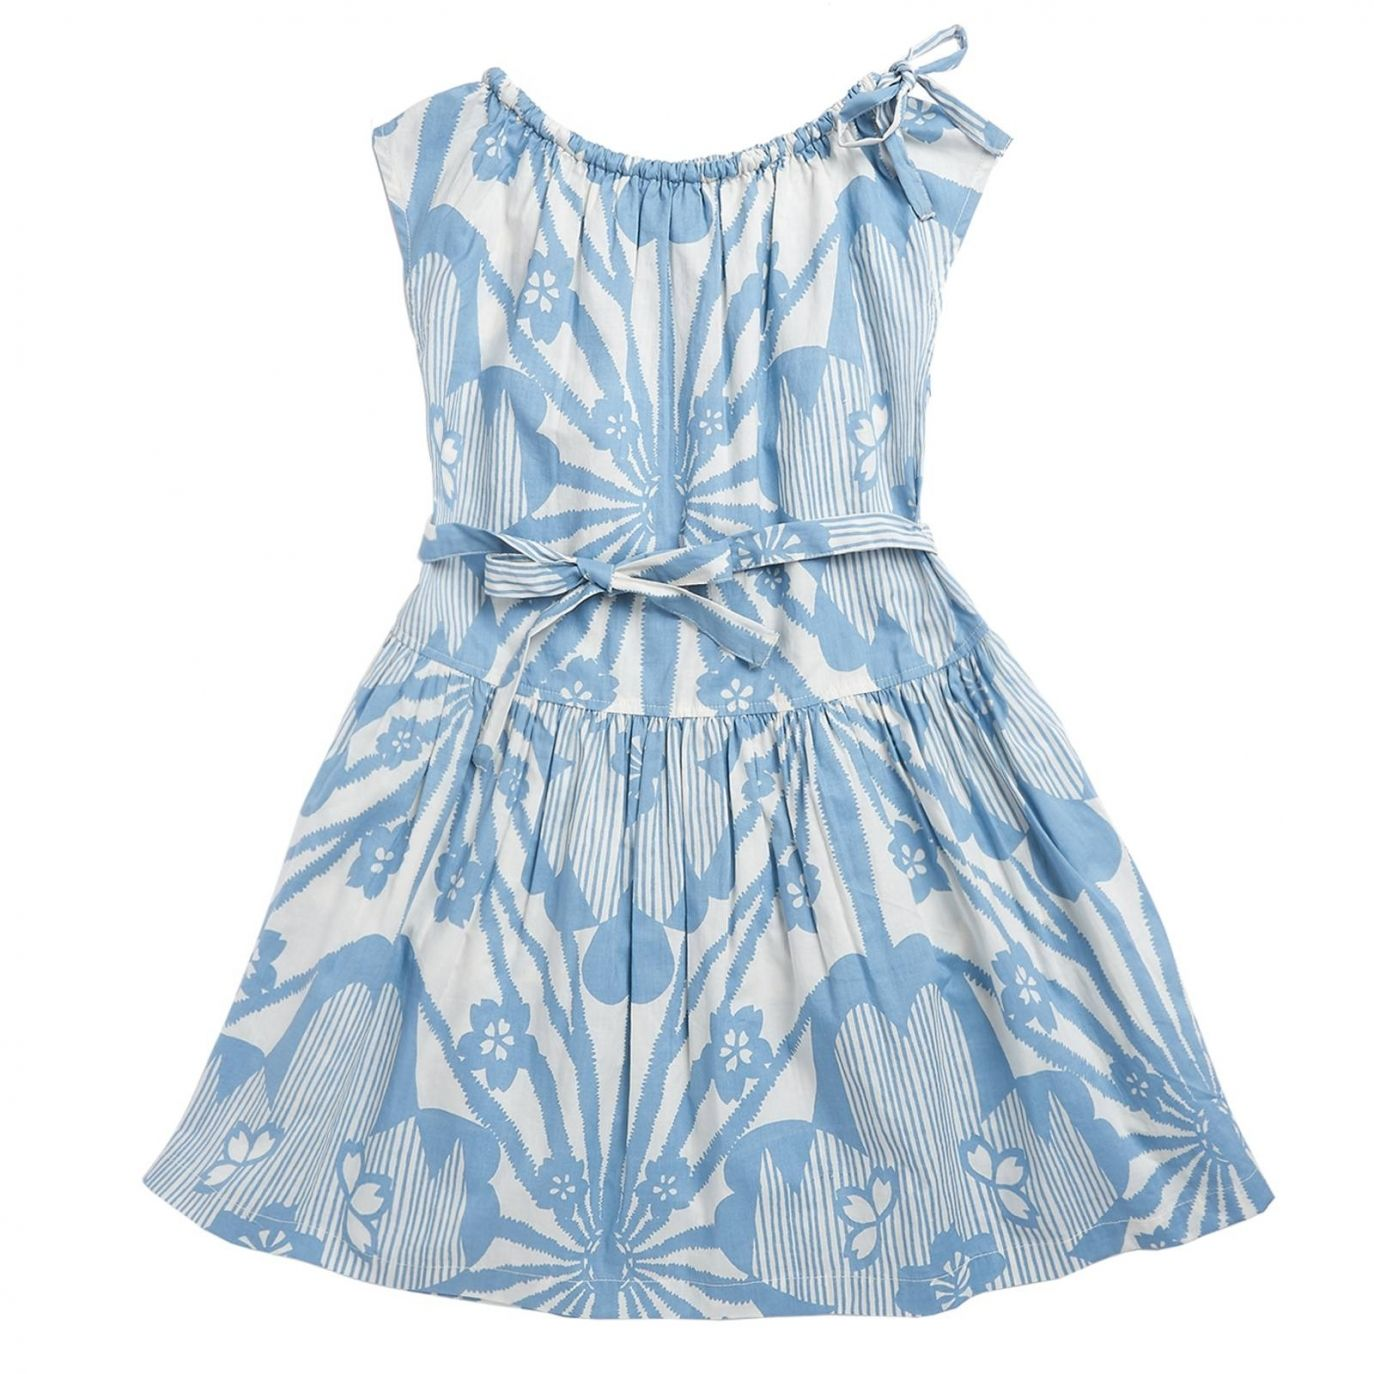 Caramel Baby & Child Dress Notting Hill Blue